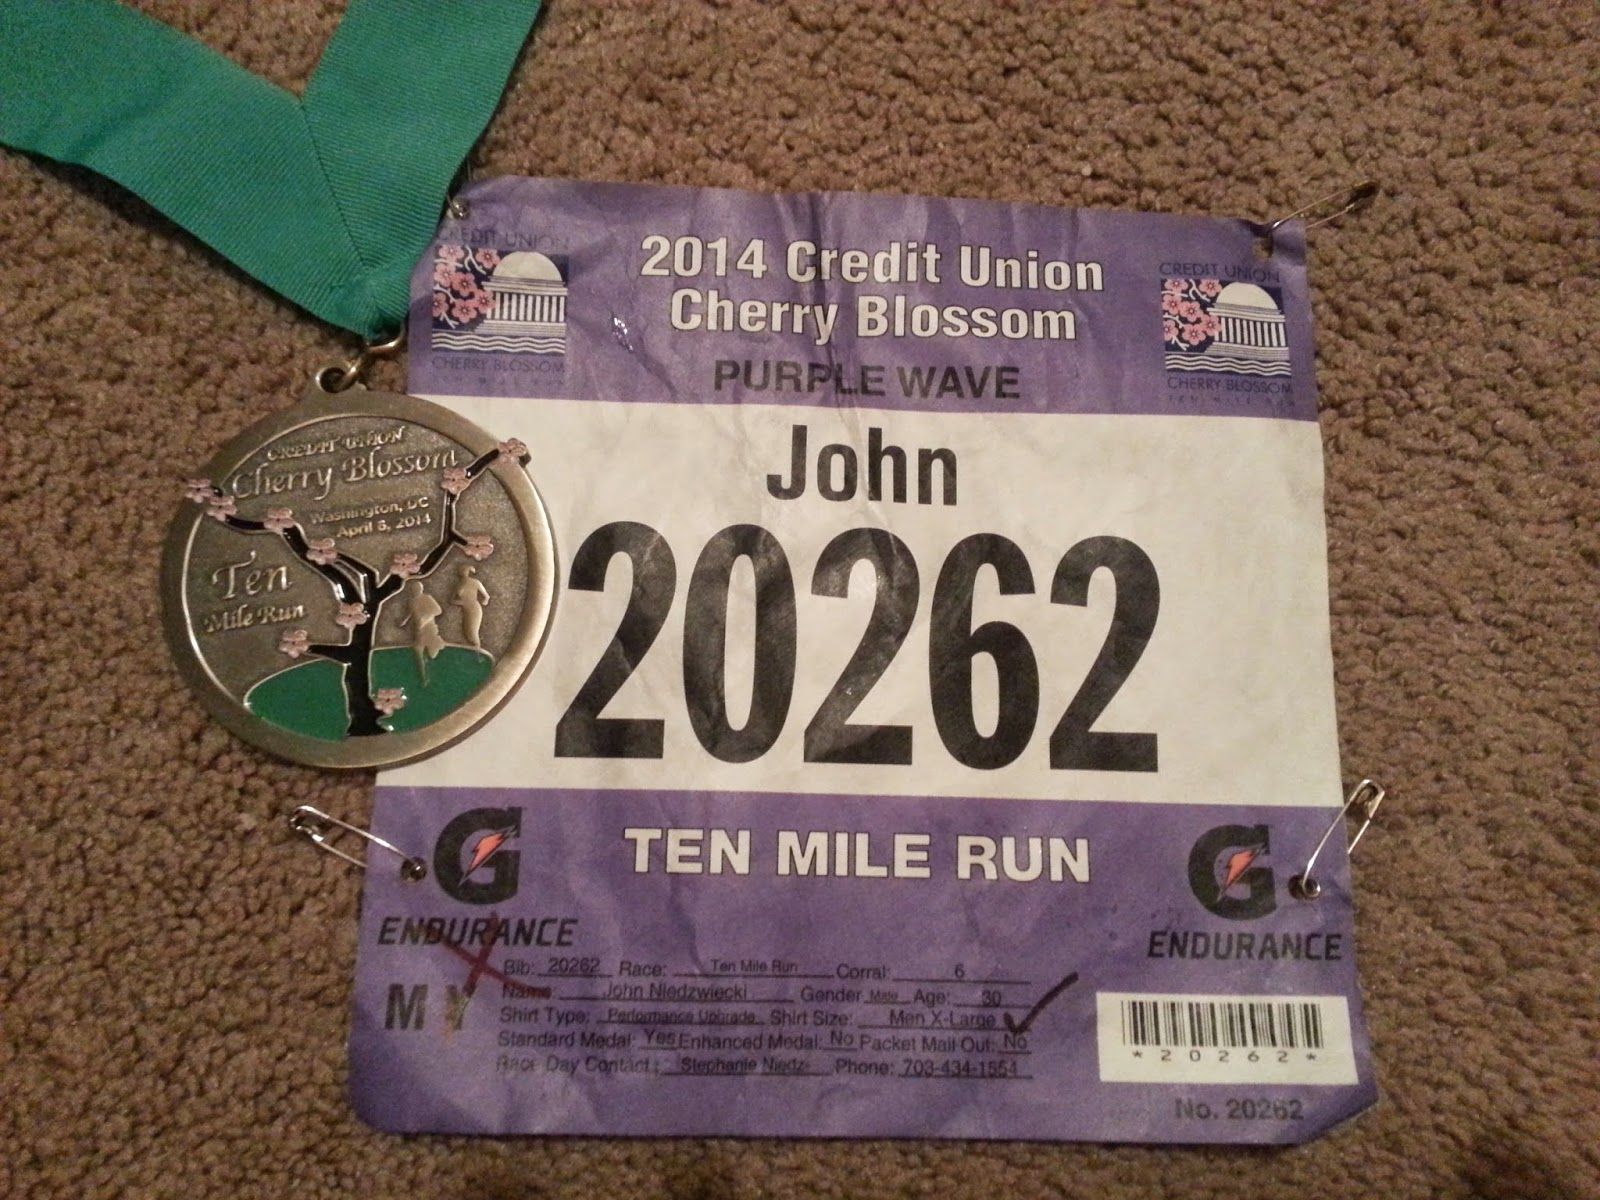 Cherry Blossom medal and bib.